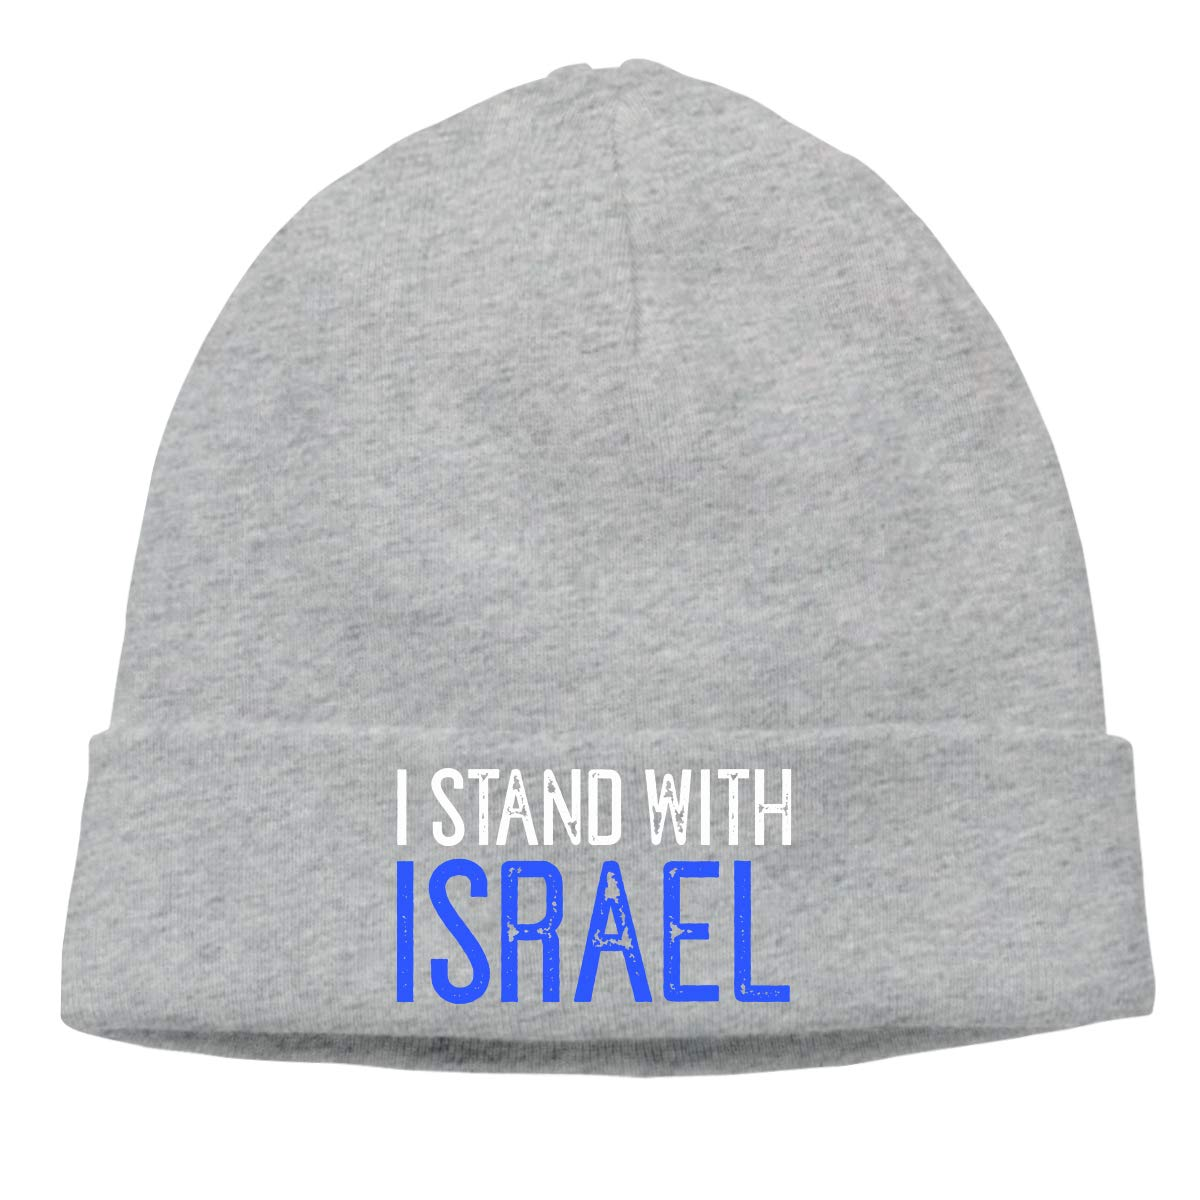 I Stand with Israel Support CgyOIUY-lop Beanie Hat Warm Hats Skull Cap Knitted Hat